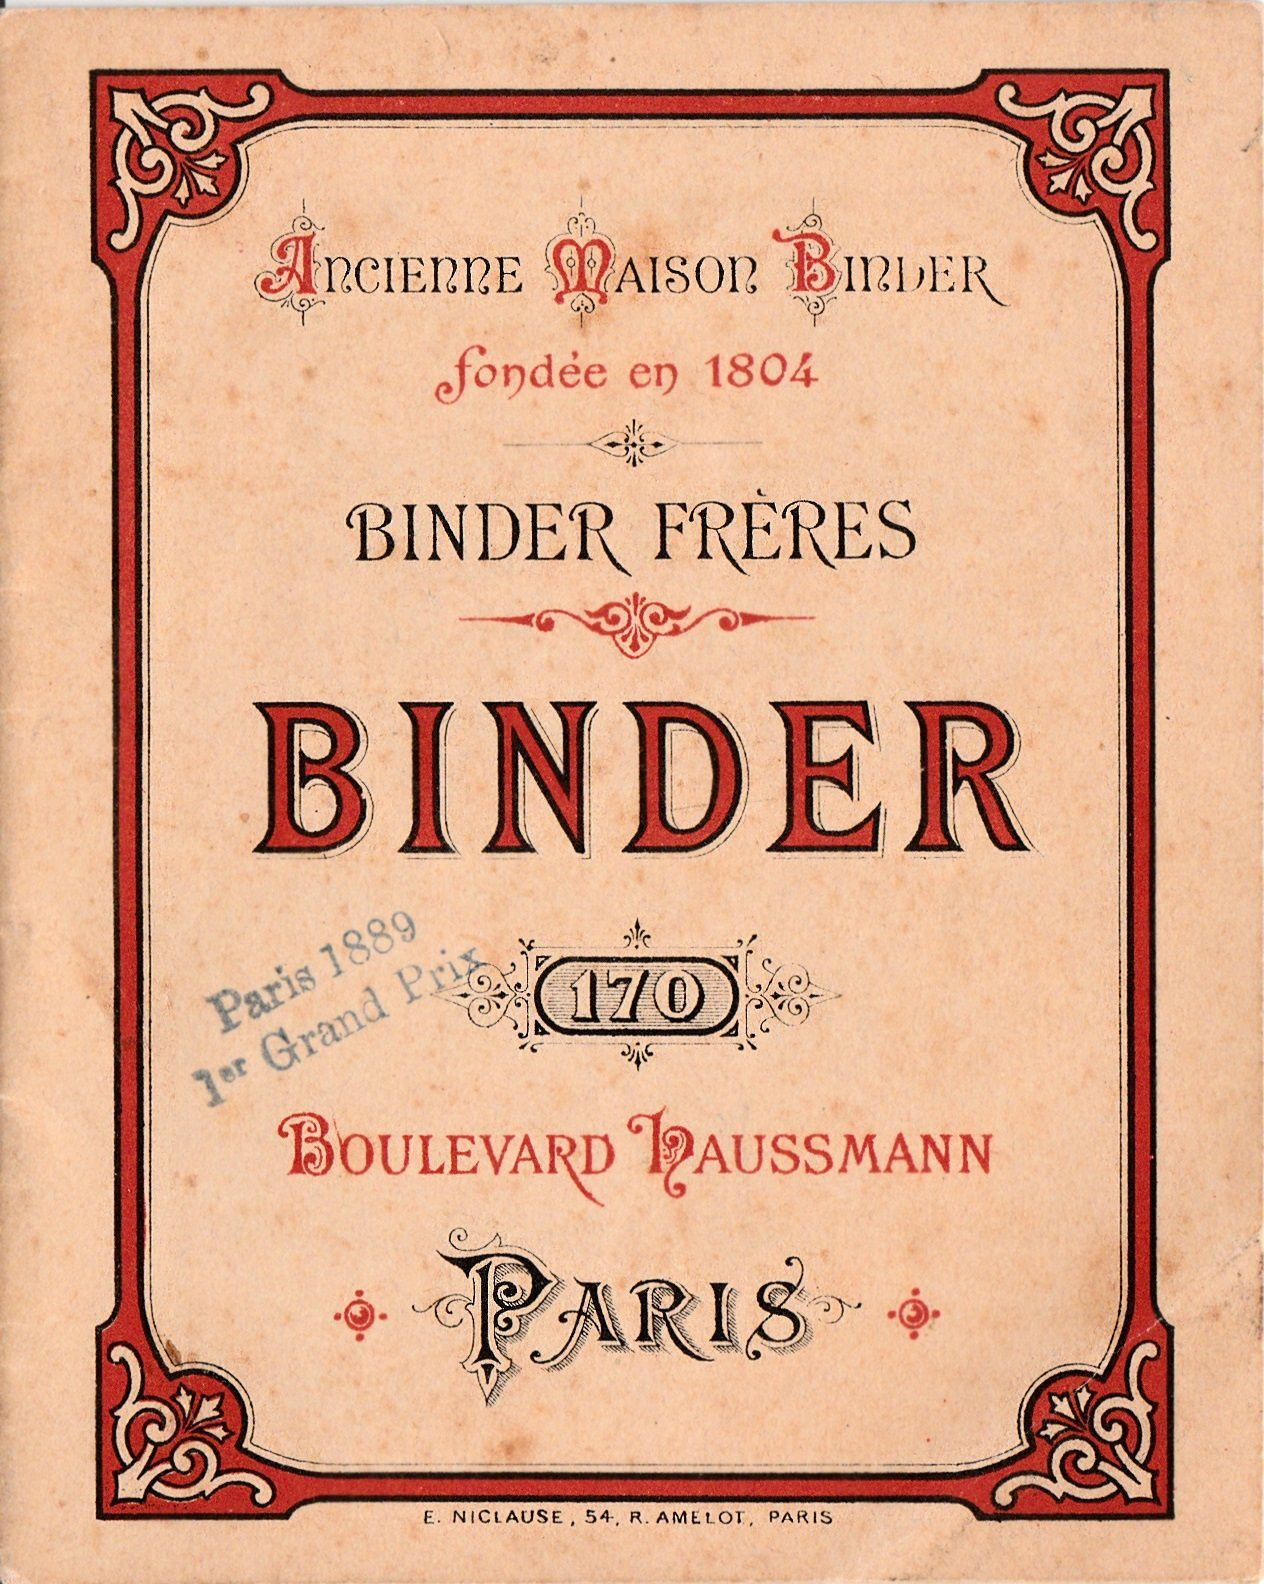 2.	Boulevard Haussmann, maison Binder (couverture d'un catalogue Binder).